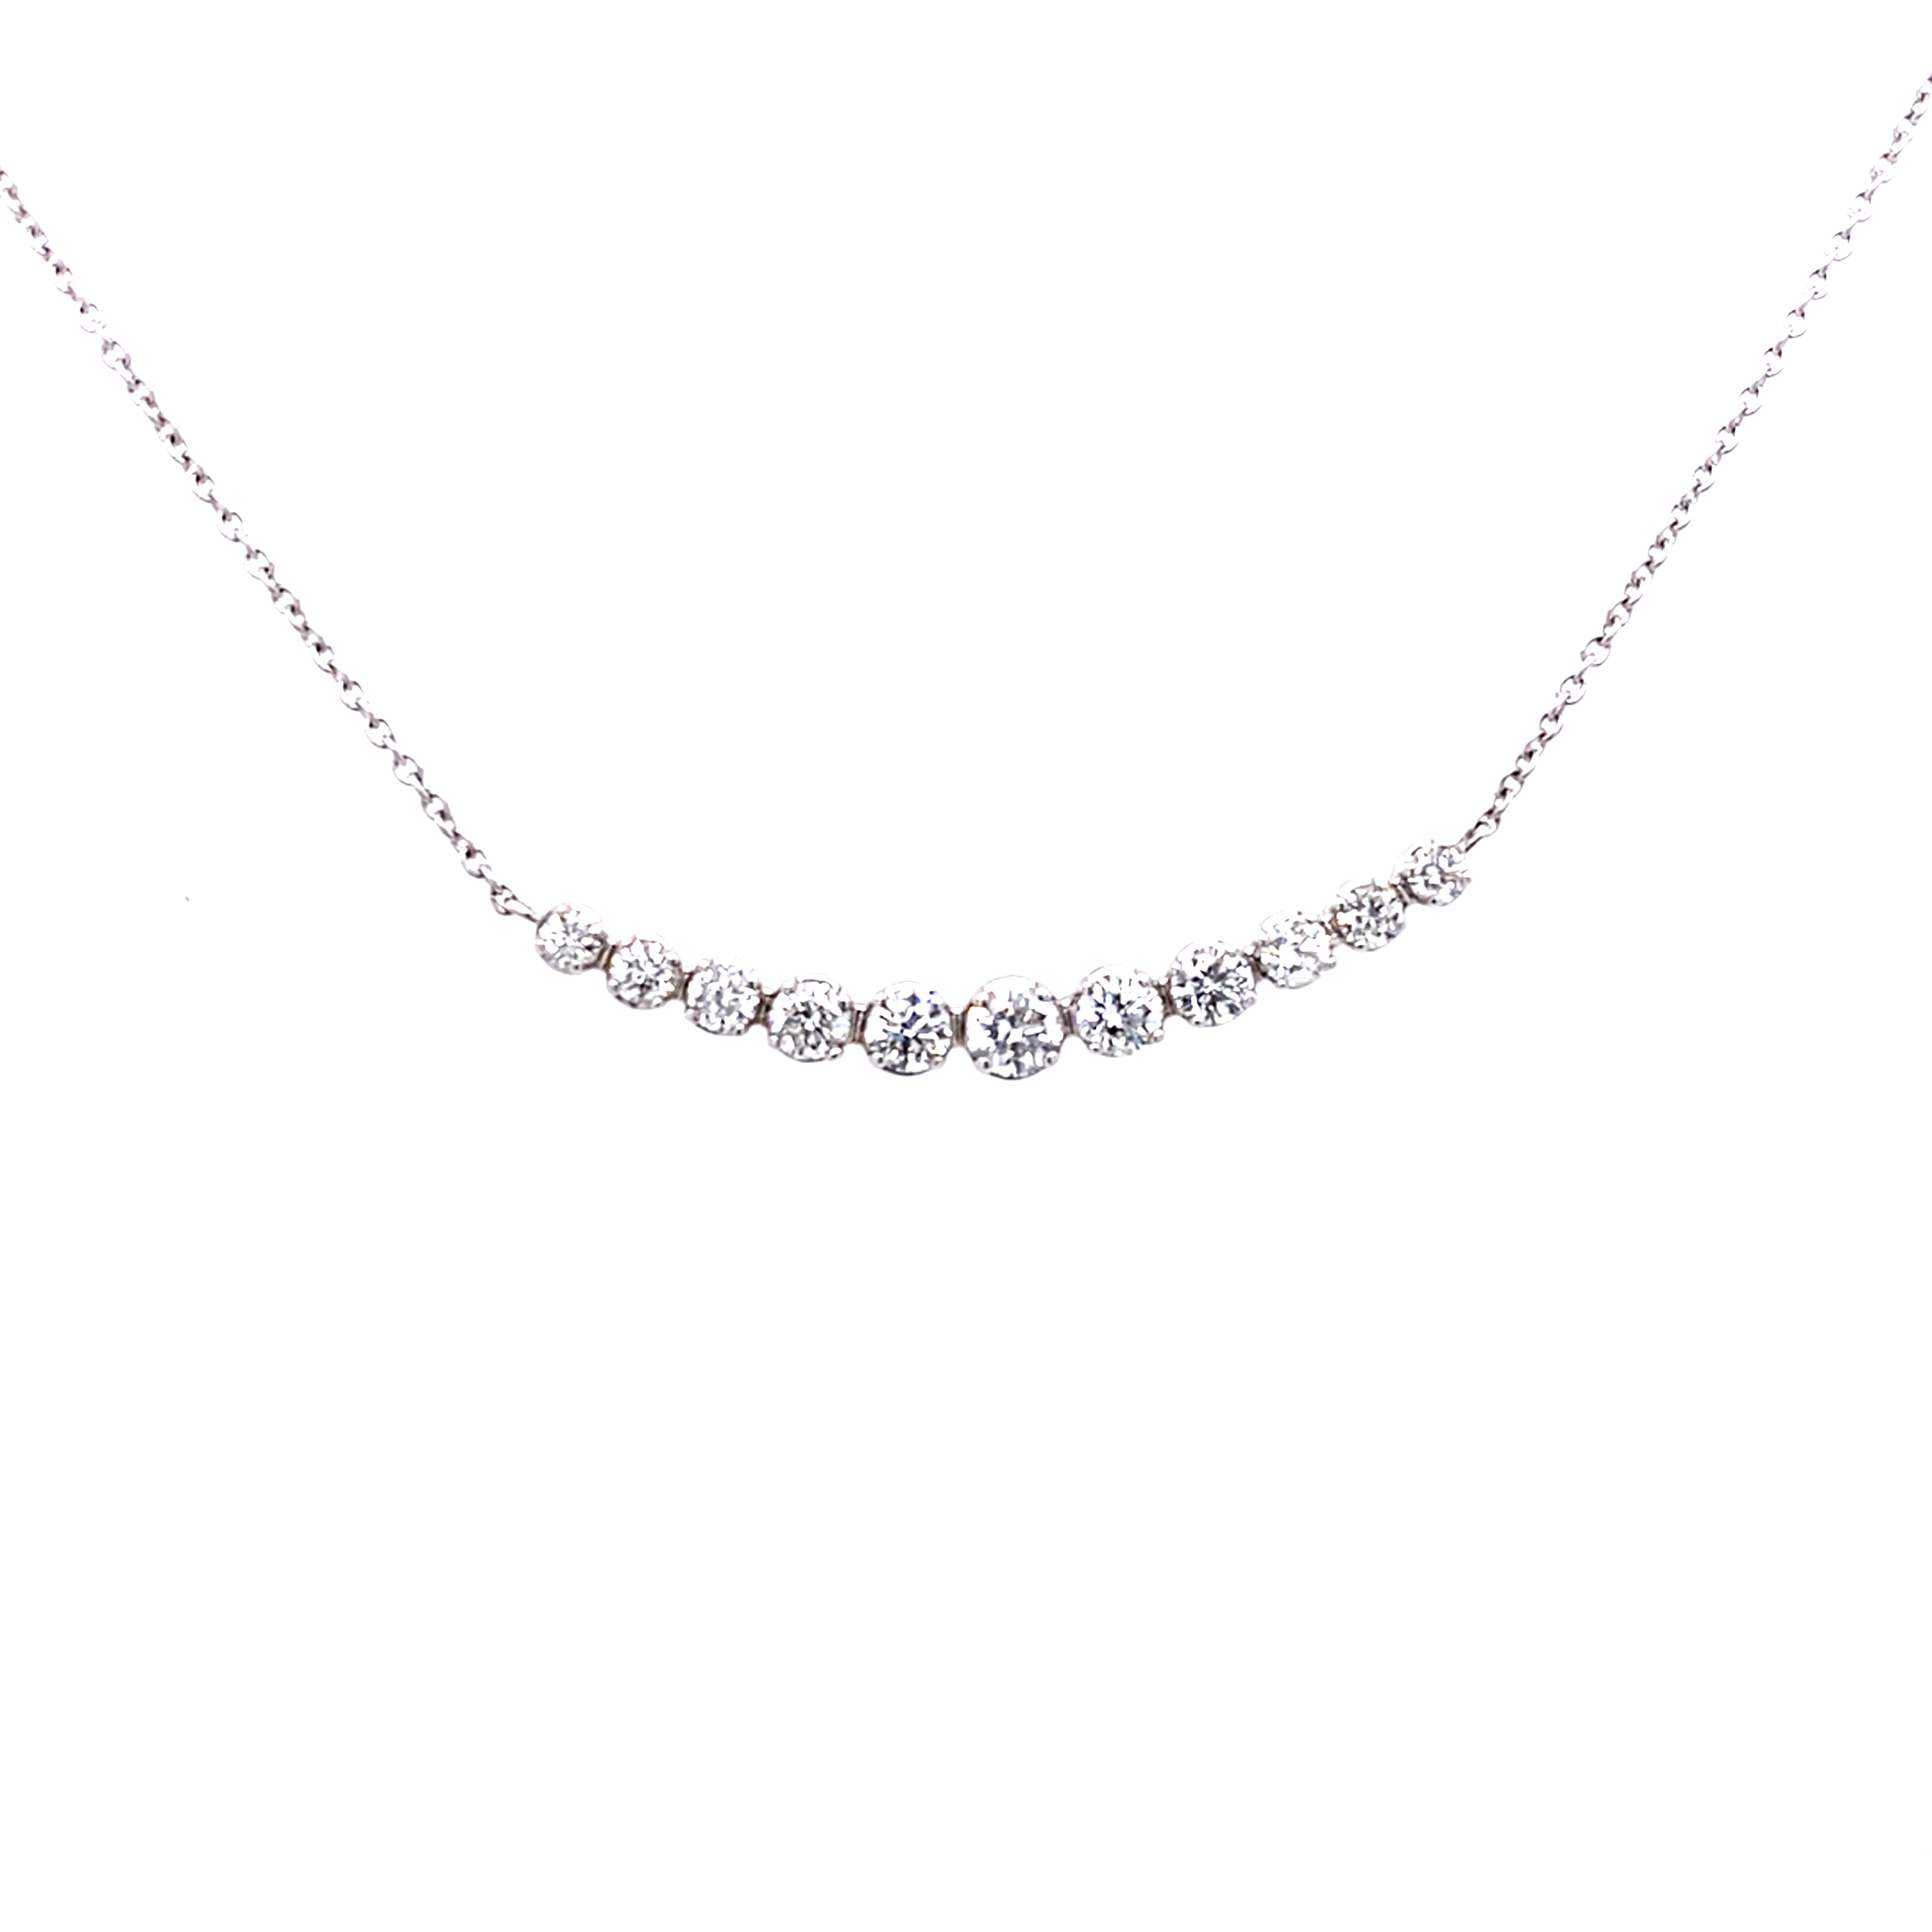 18 Carat White Gold Graduated Diamond Smile Necklet 0.50 Cts